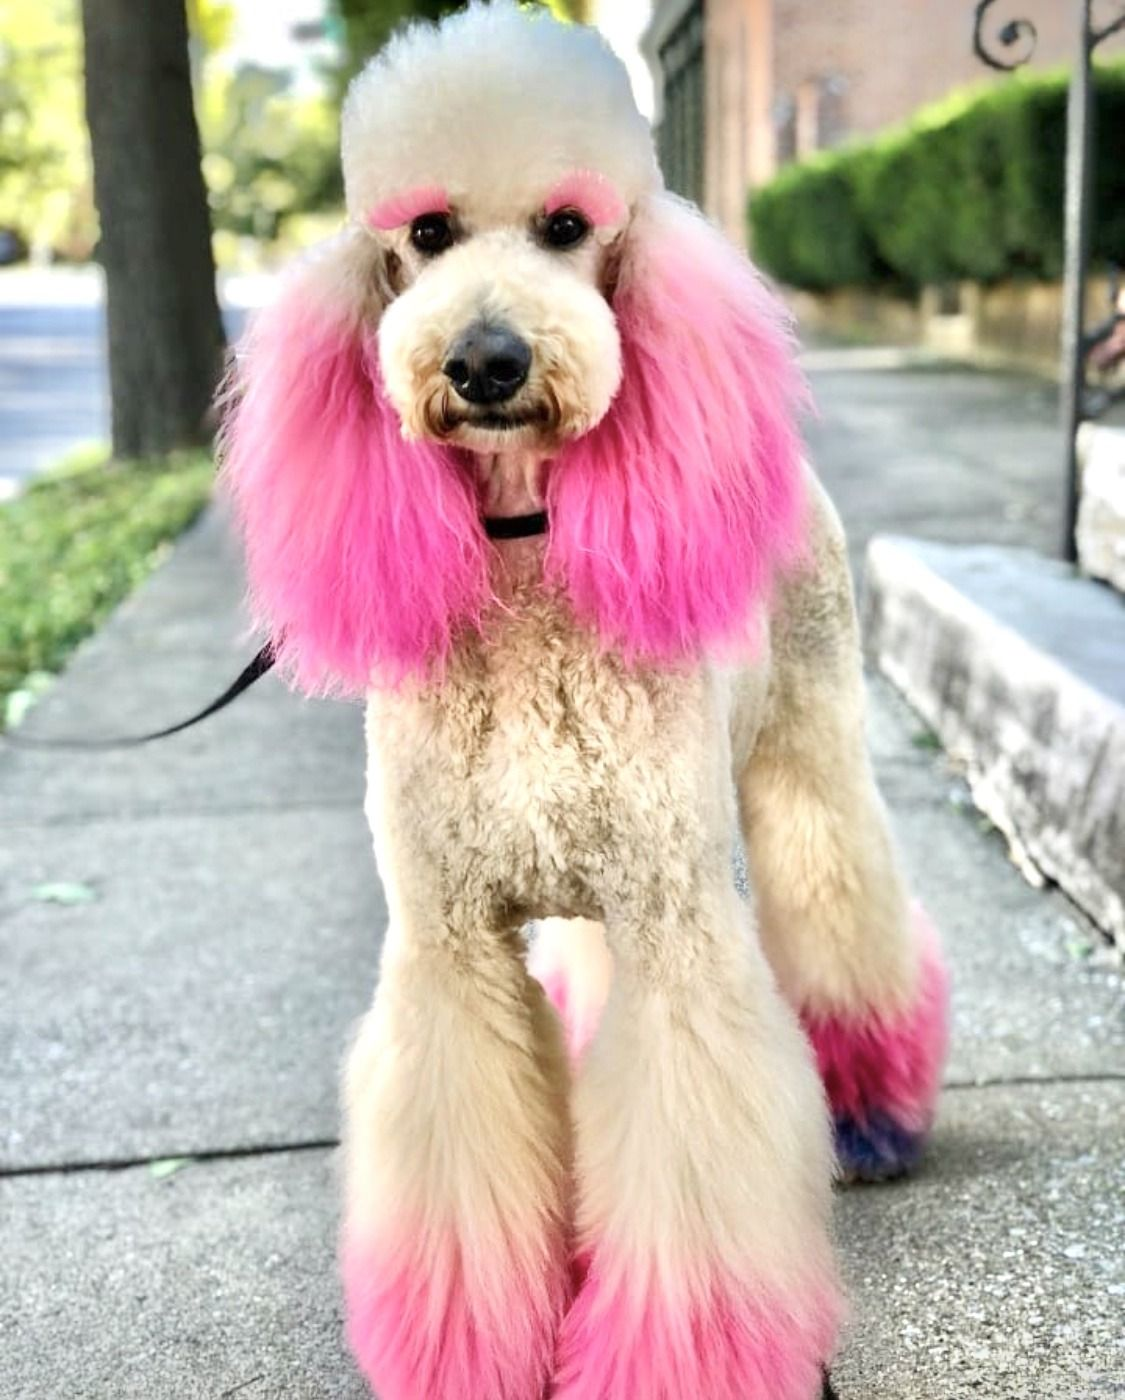 ♥︎ barbieville™ ♥︎ Creative grooming, Dog grooming, Pink dog